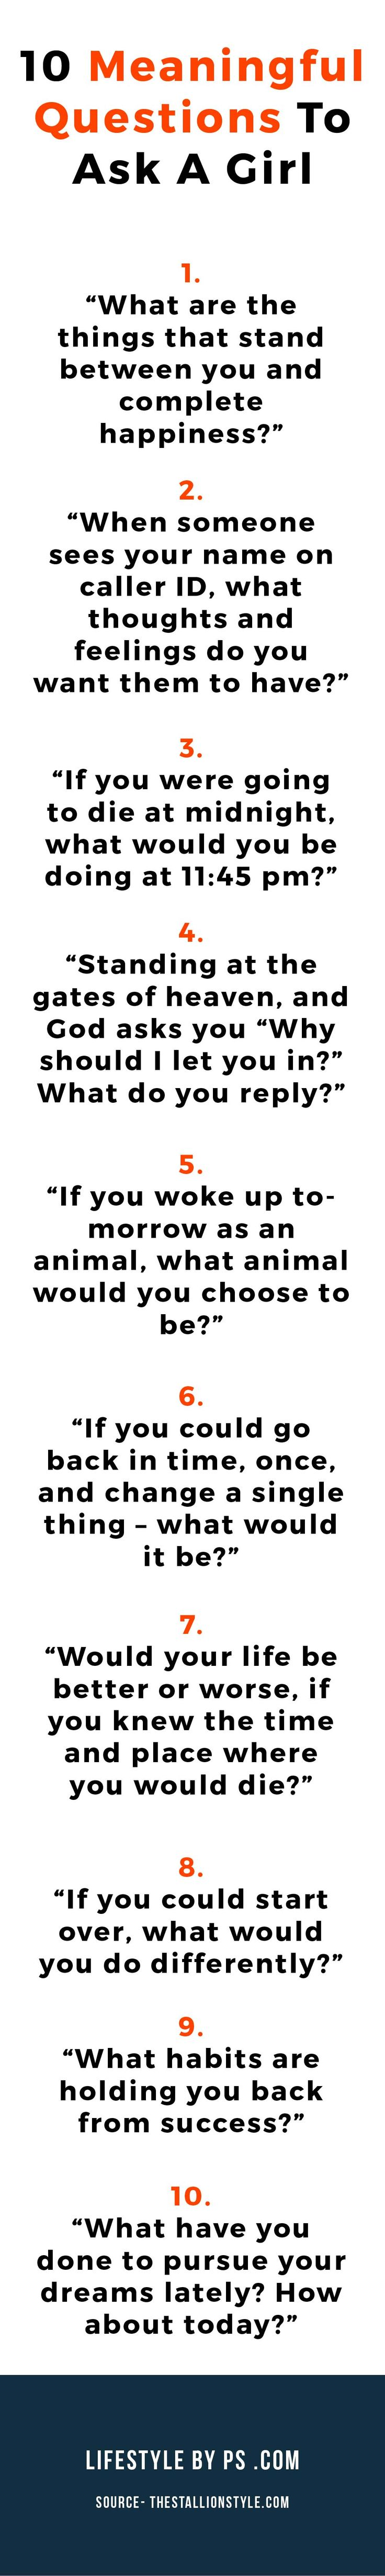 150 questions to ask a girl you want to impress this or